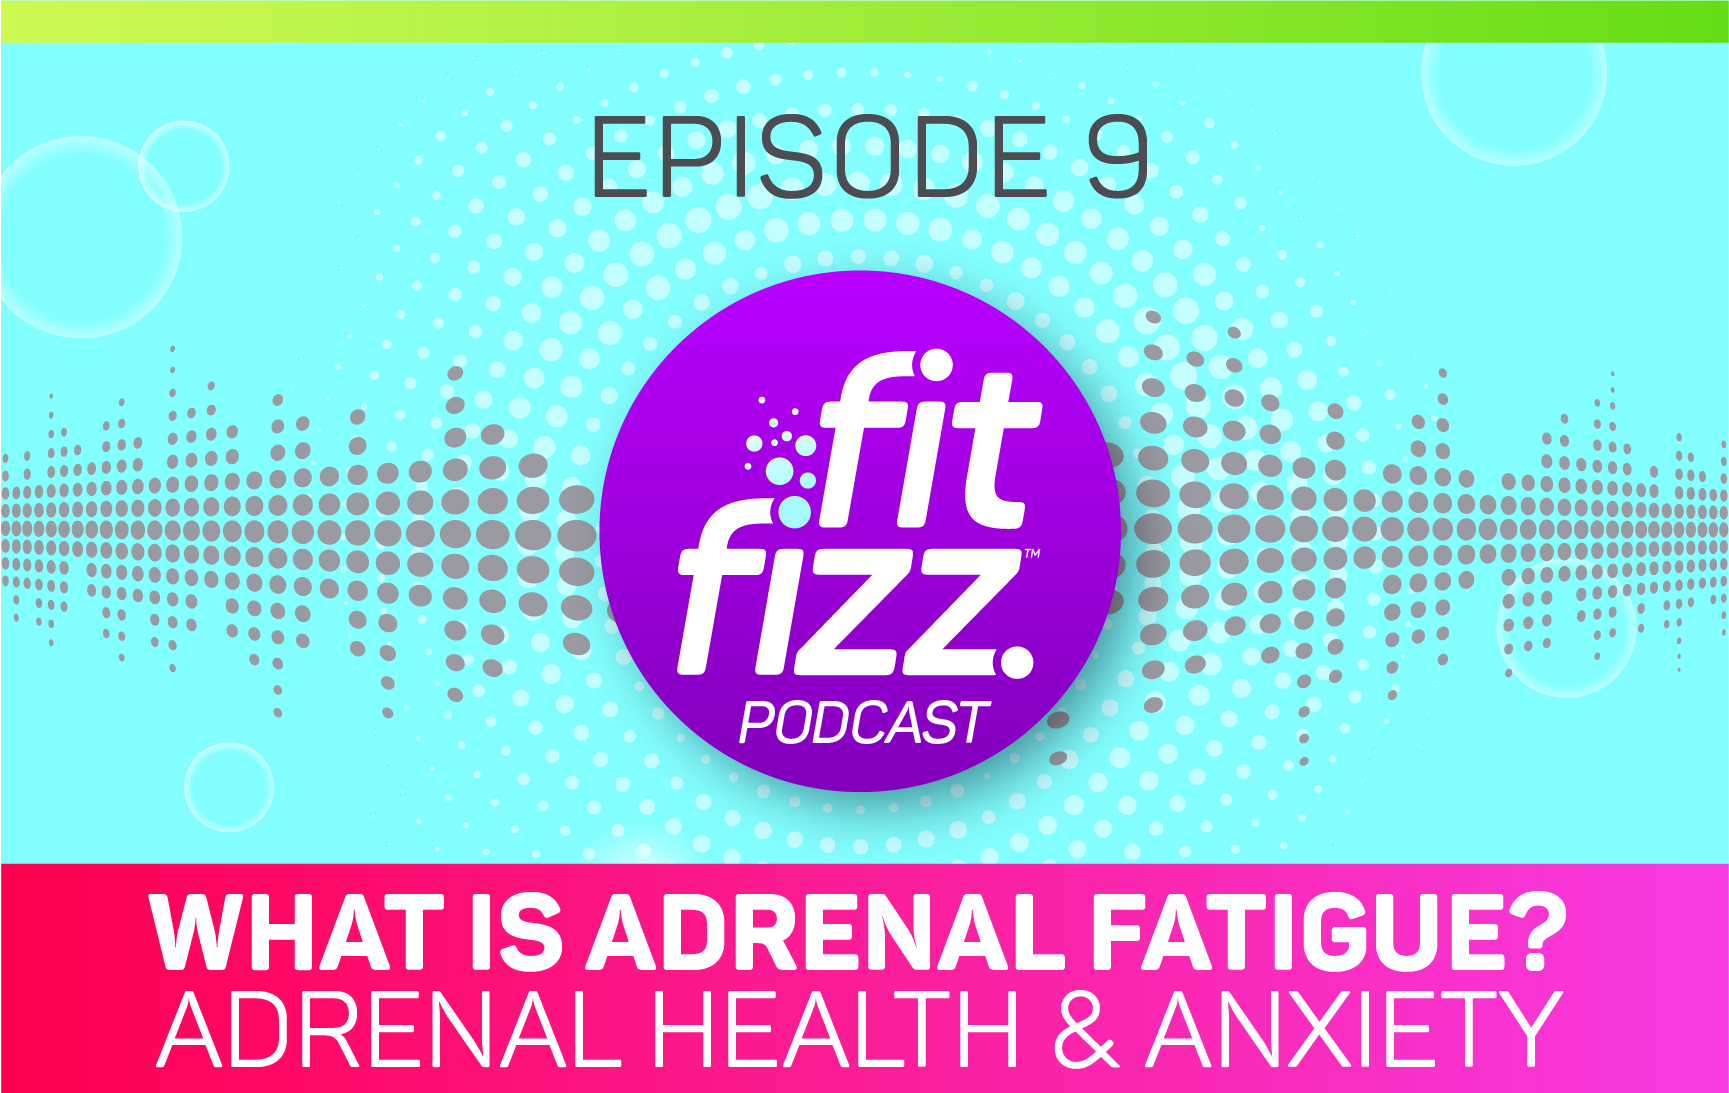 Podcast Episode 09: What is Adrenal Fatigue? Adrenal Health and Anxiety